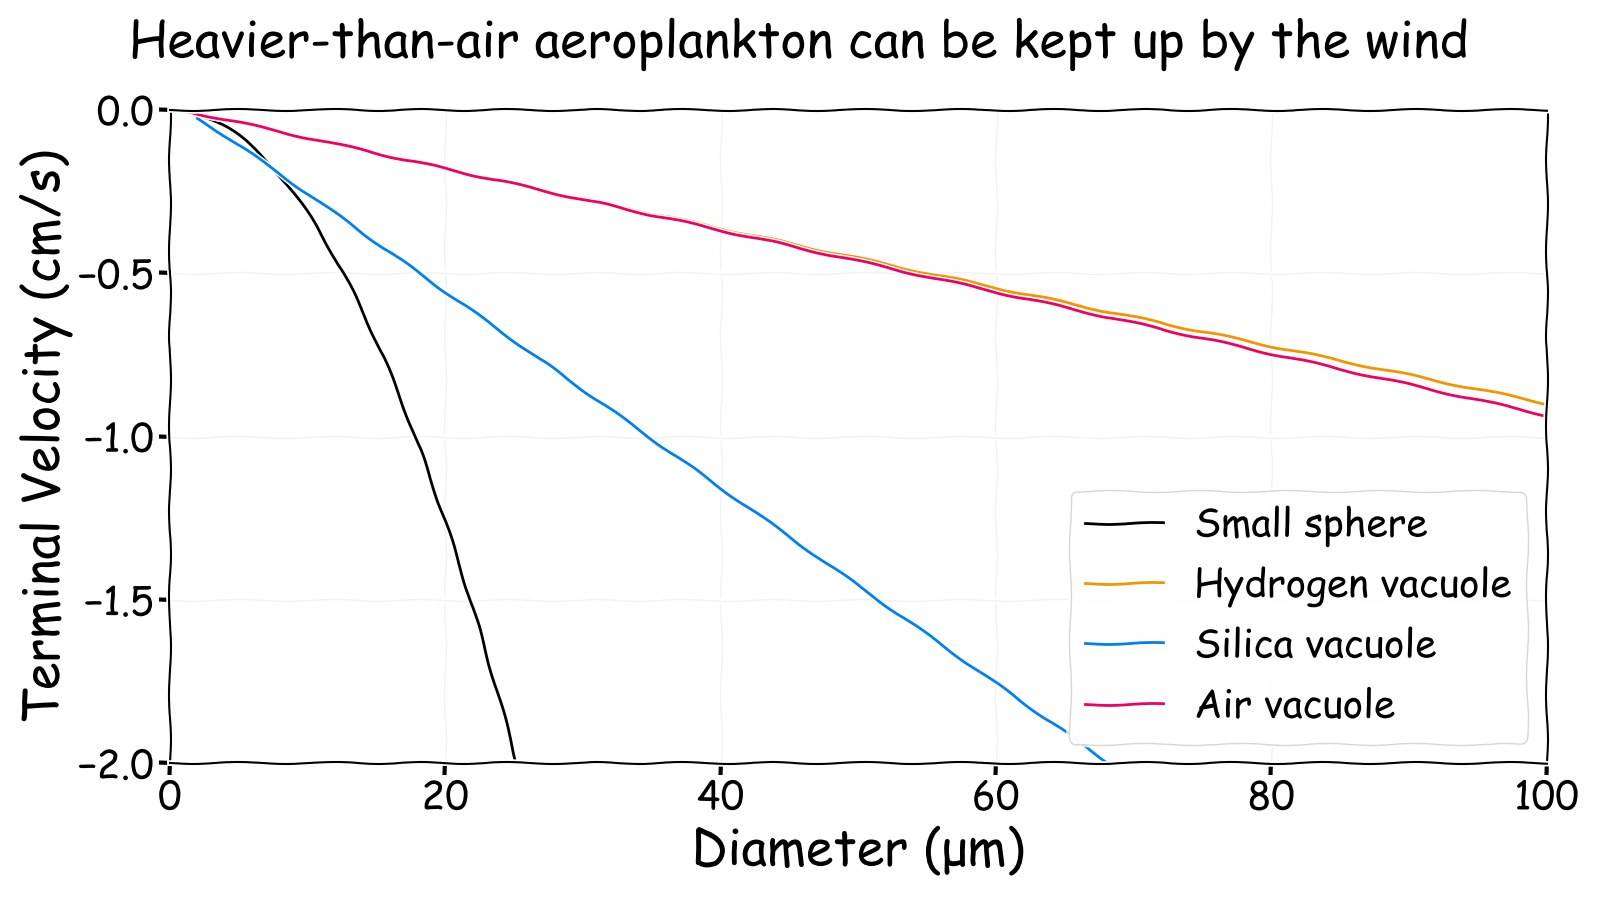 Heavier-than-air aeroplankton can be kept up by the wind